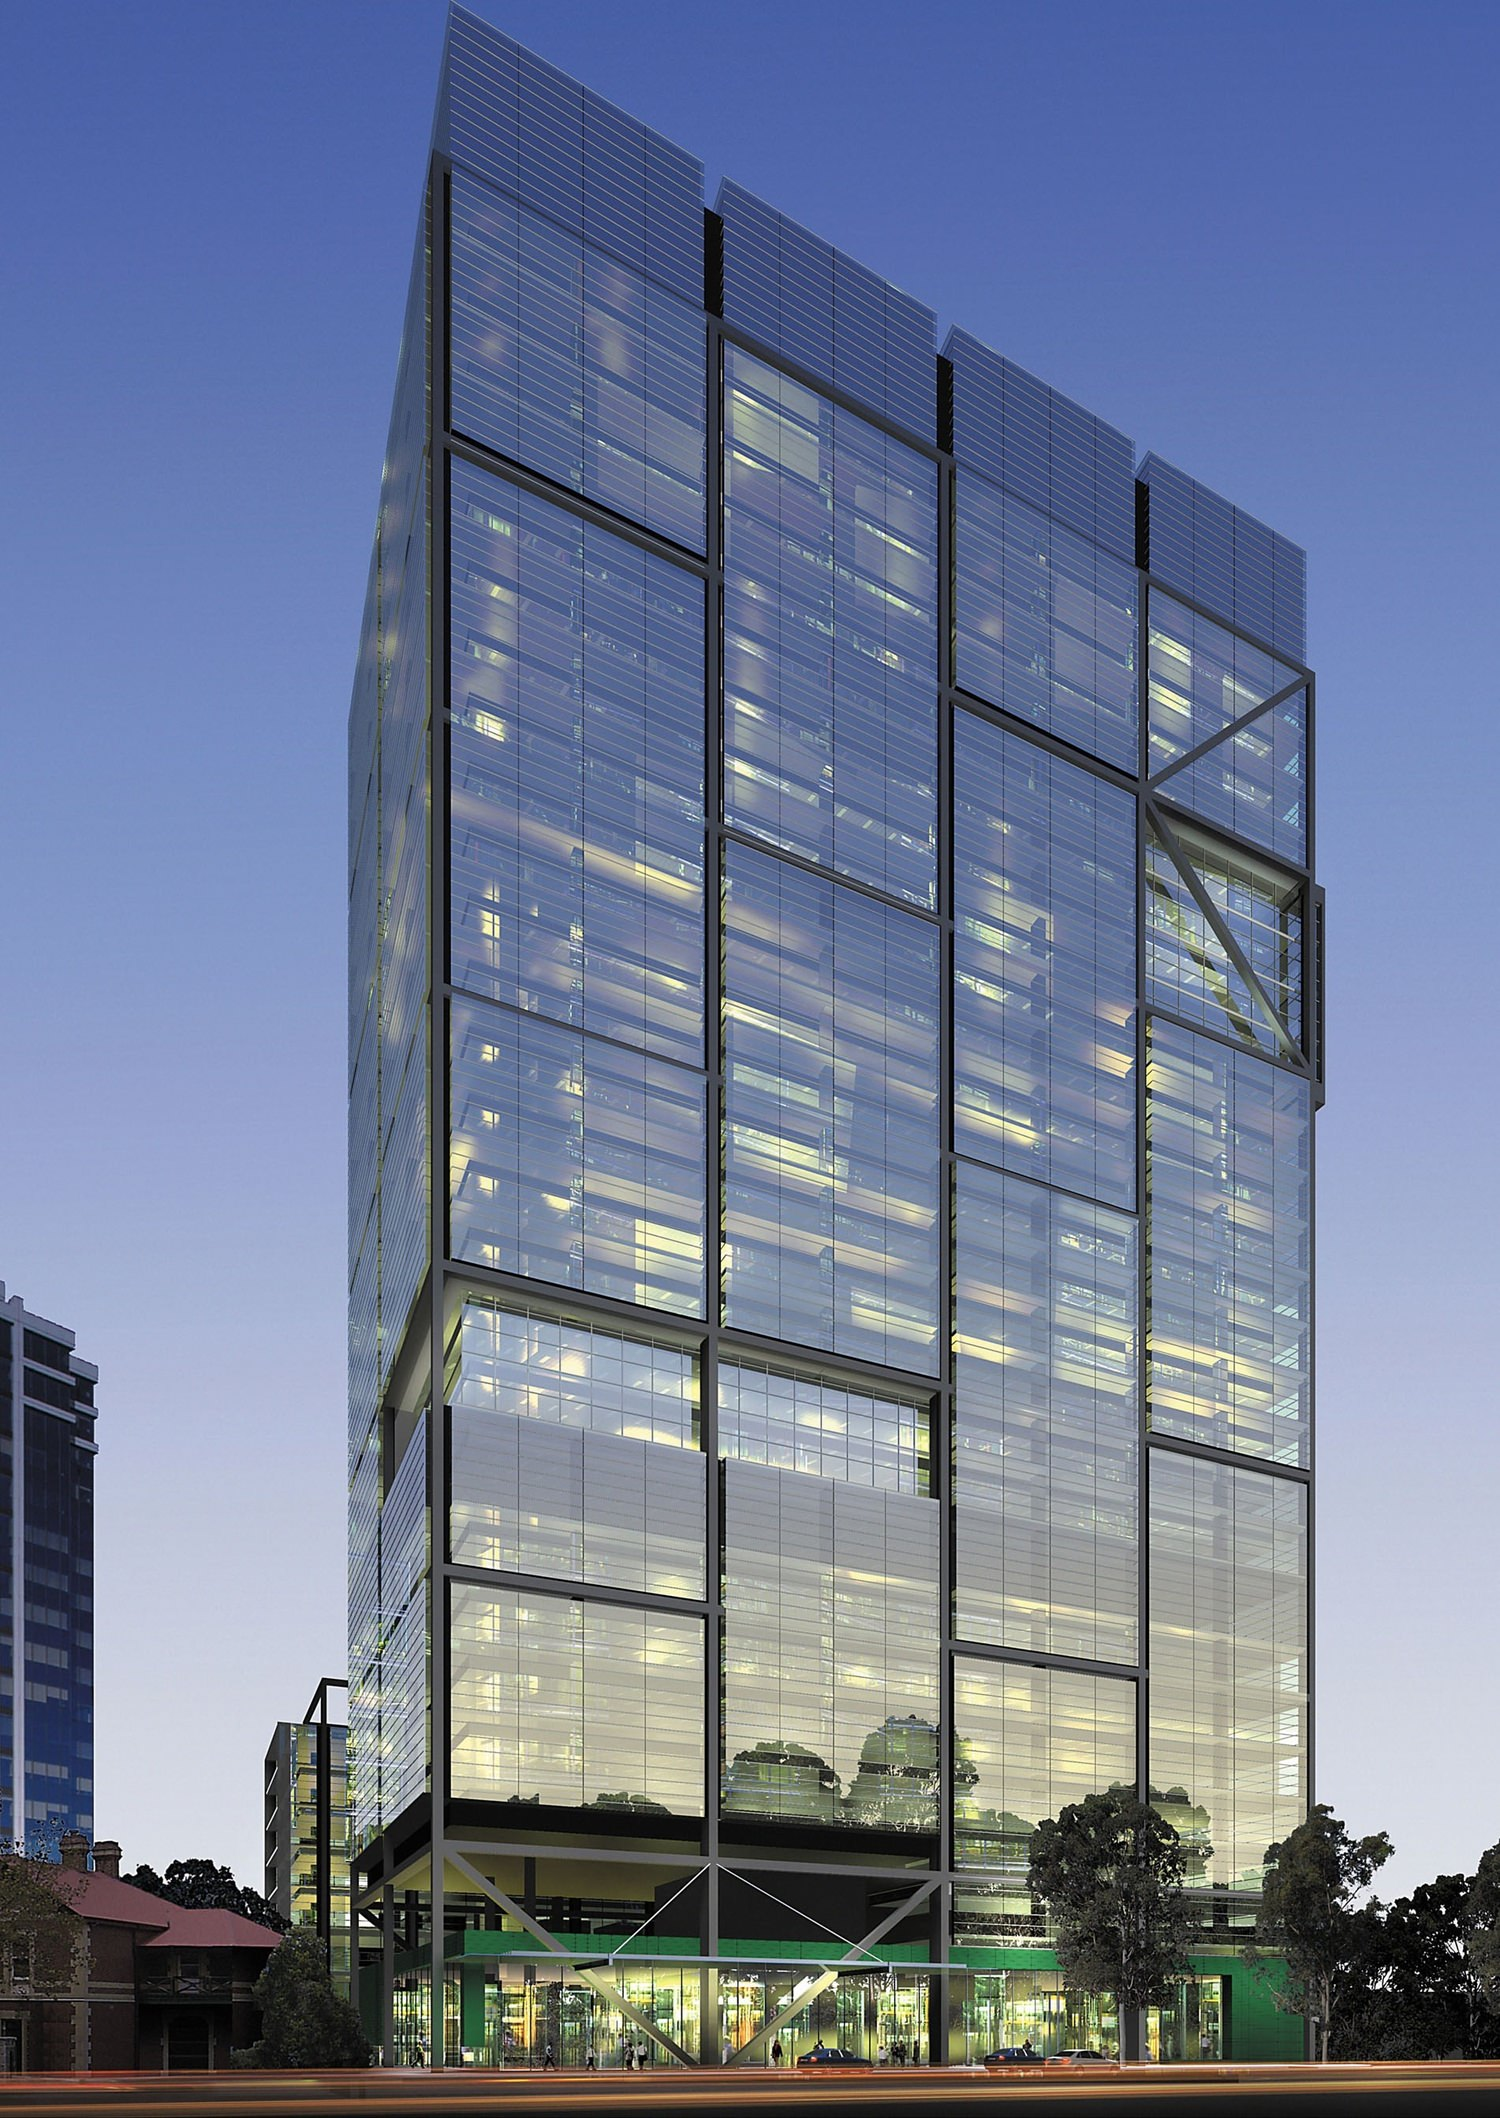 A large building that has very large glass panels on it and there are some trees at the base of it.